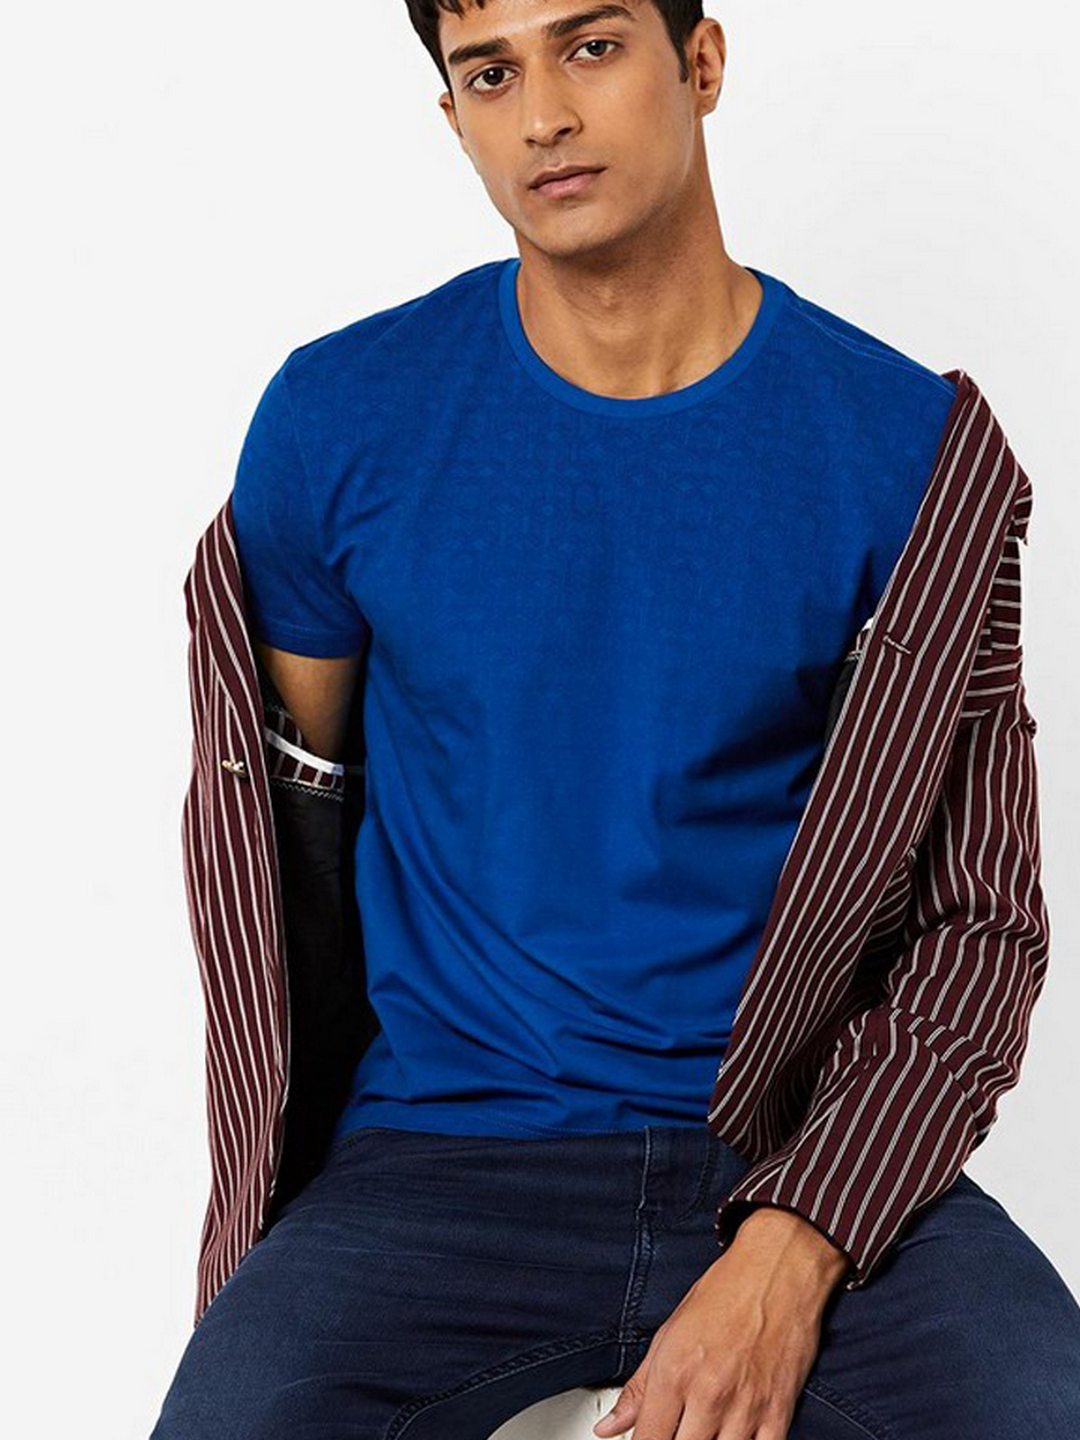 Men's Scuba printed crew neck blue t-shirt